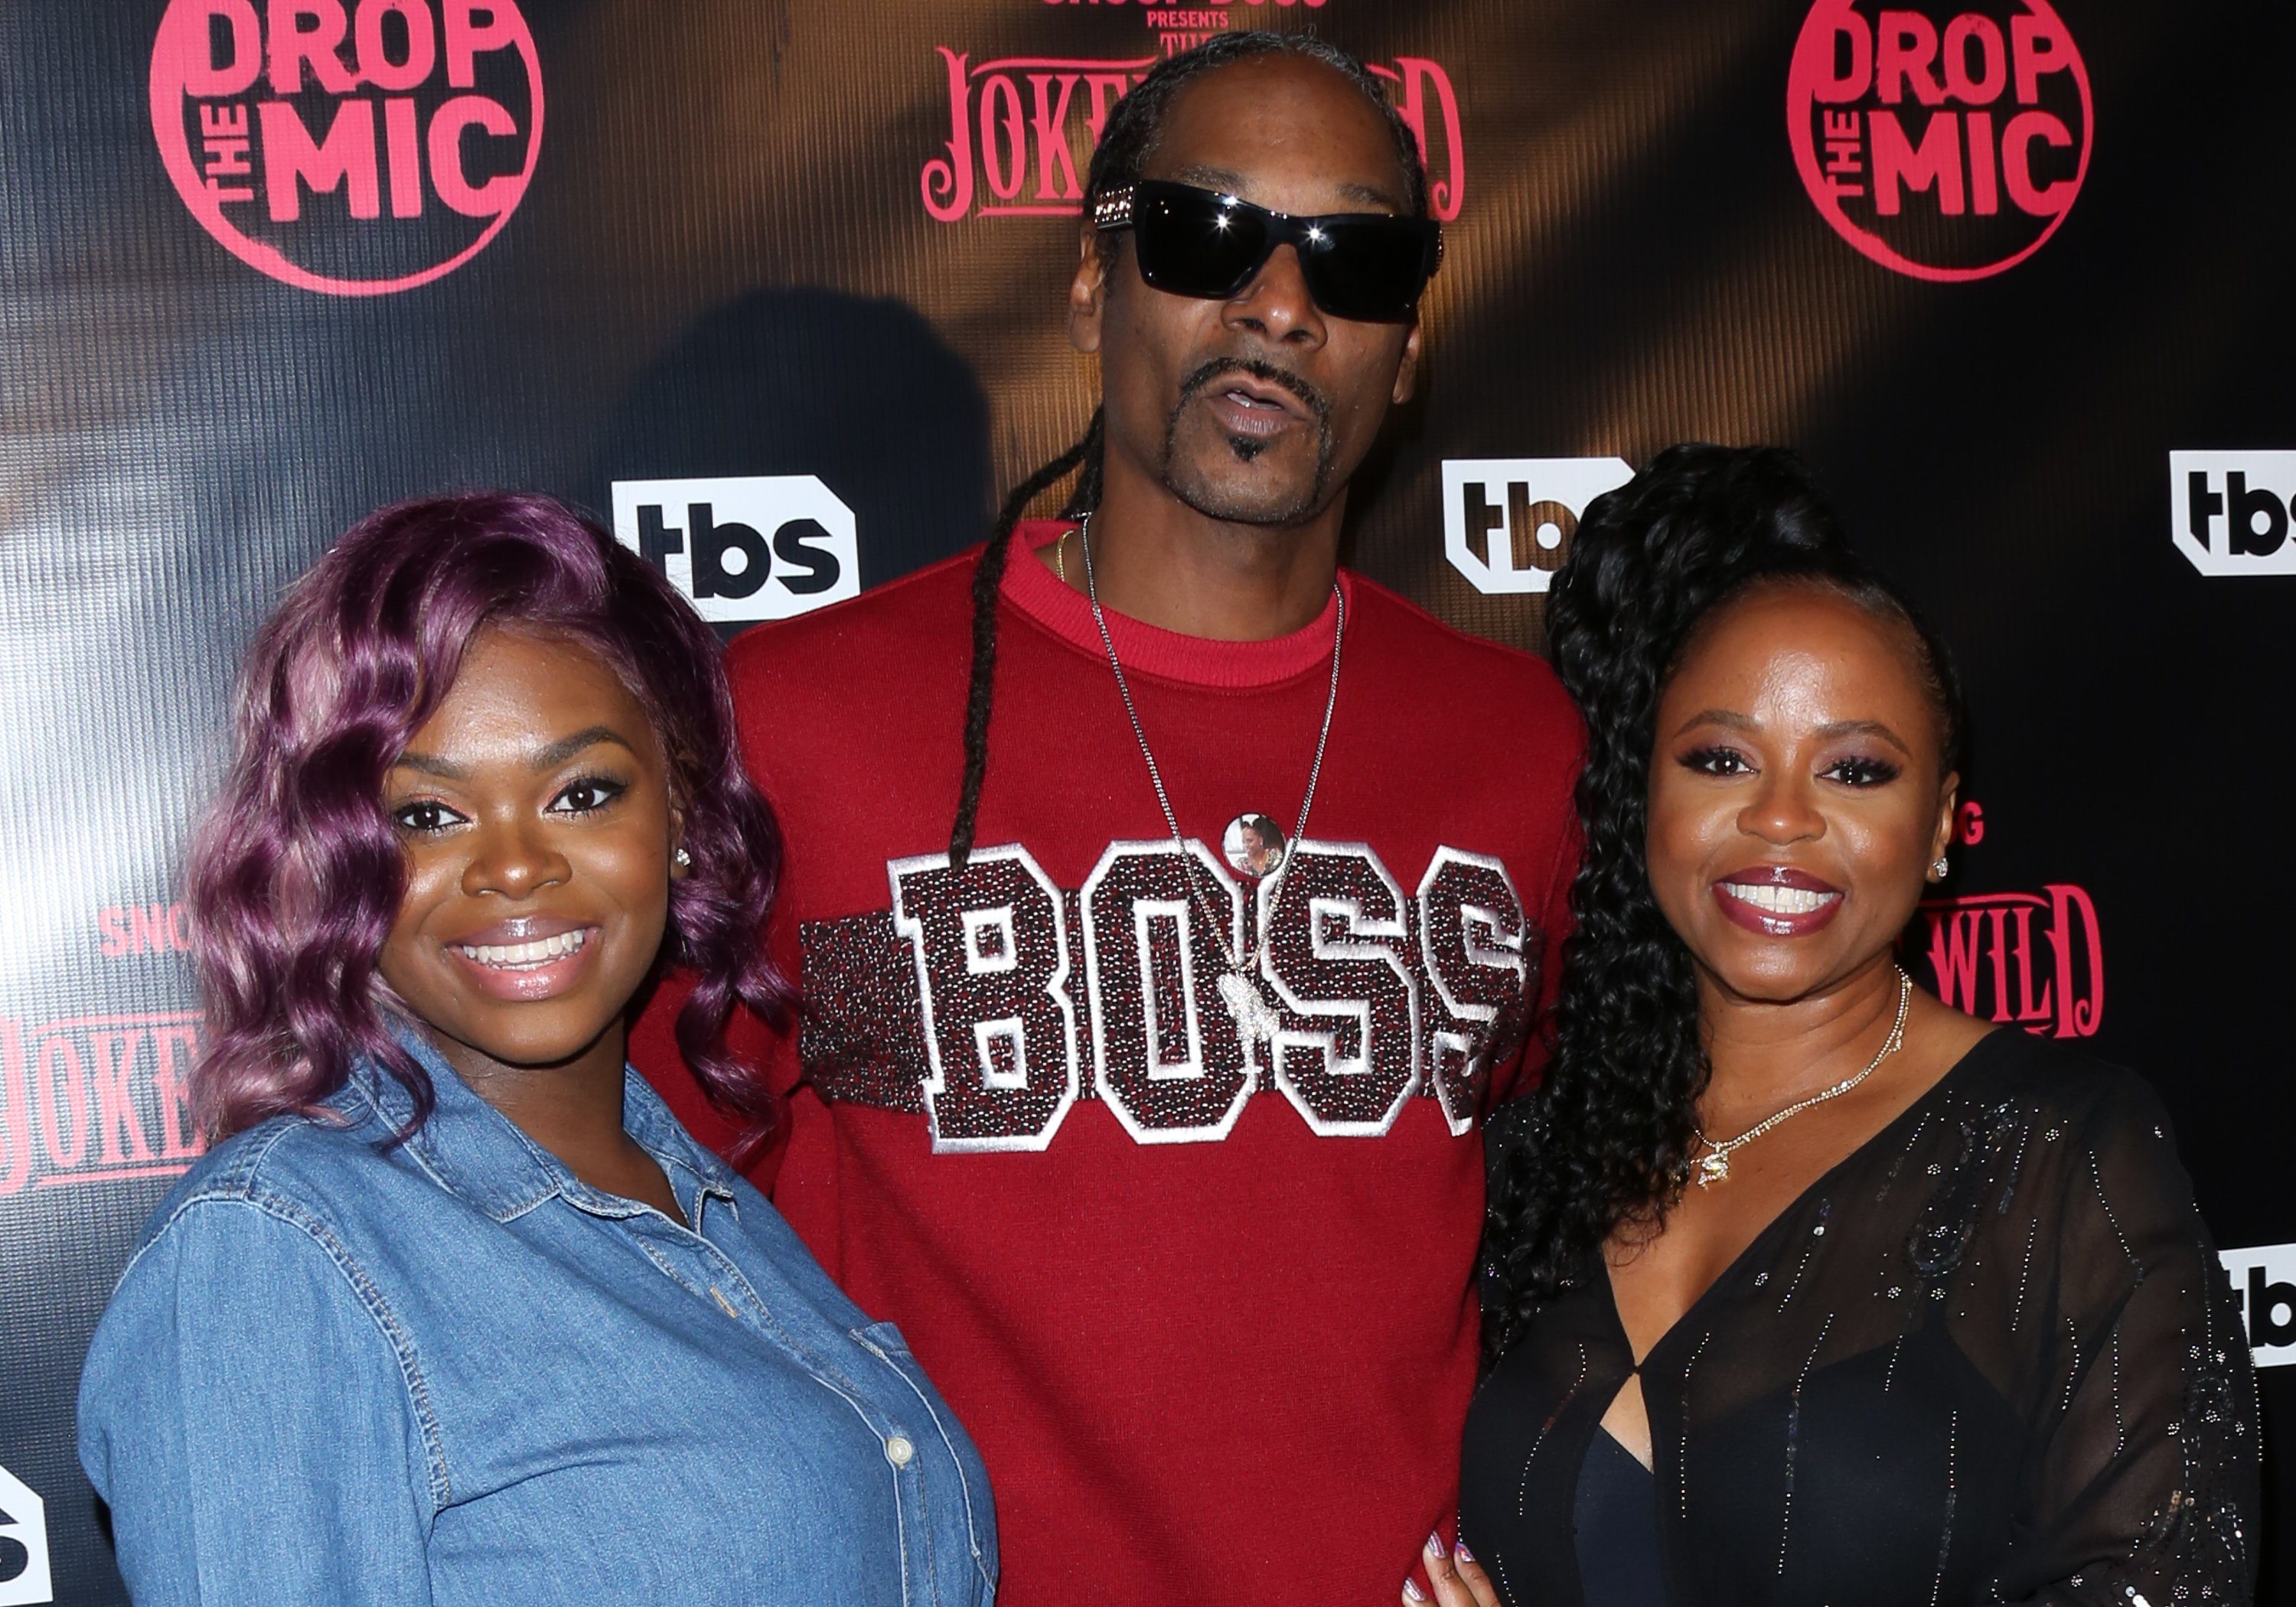 """Cori Broadus, Snoop Dogg and Shante Broadus at the premiere of TBS's """"Drop The Mic"""" and """"The Joker's Wild"""" on October 11, 2017 in Los Angeles, California   Photo: Getty Images"""